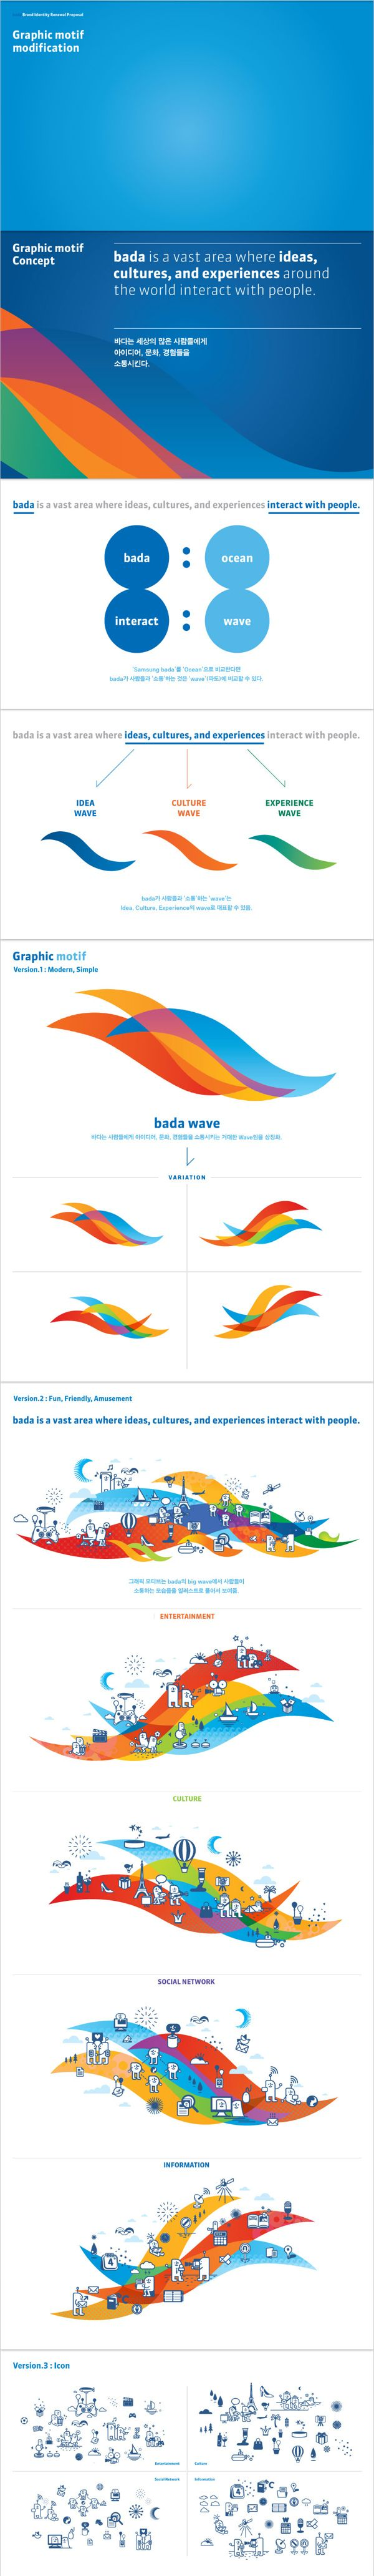 Samsung bada Brand eXperience identity renewal by Plus X , via Behance